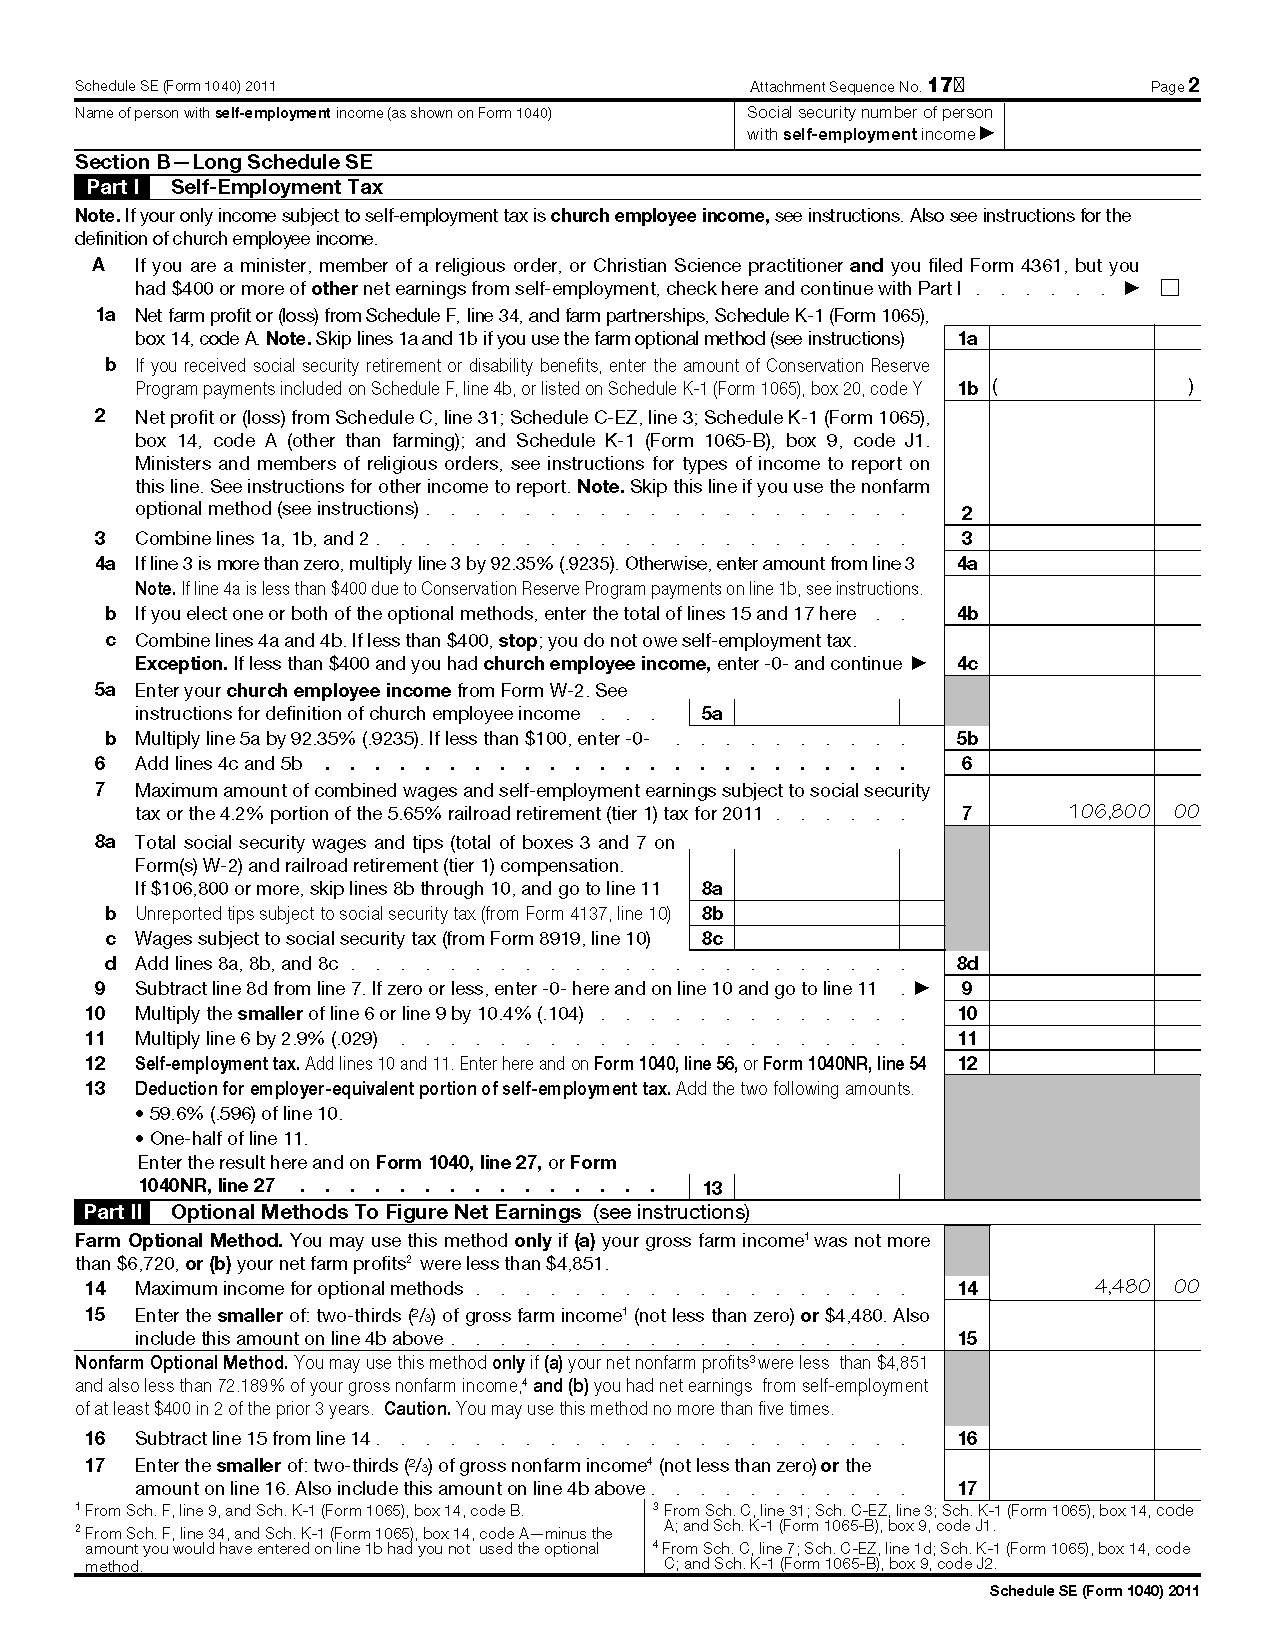 Download Irs Form Instructions